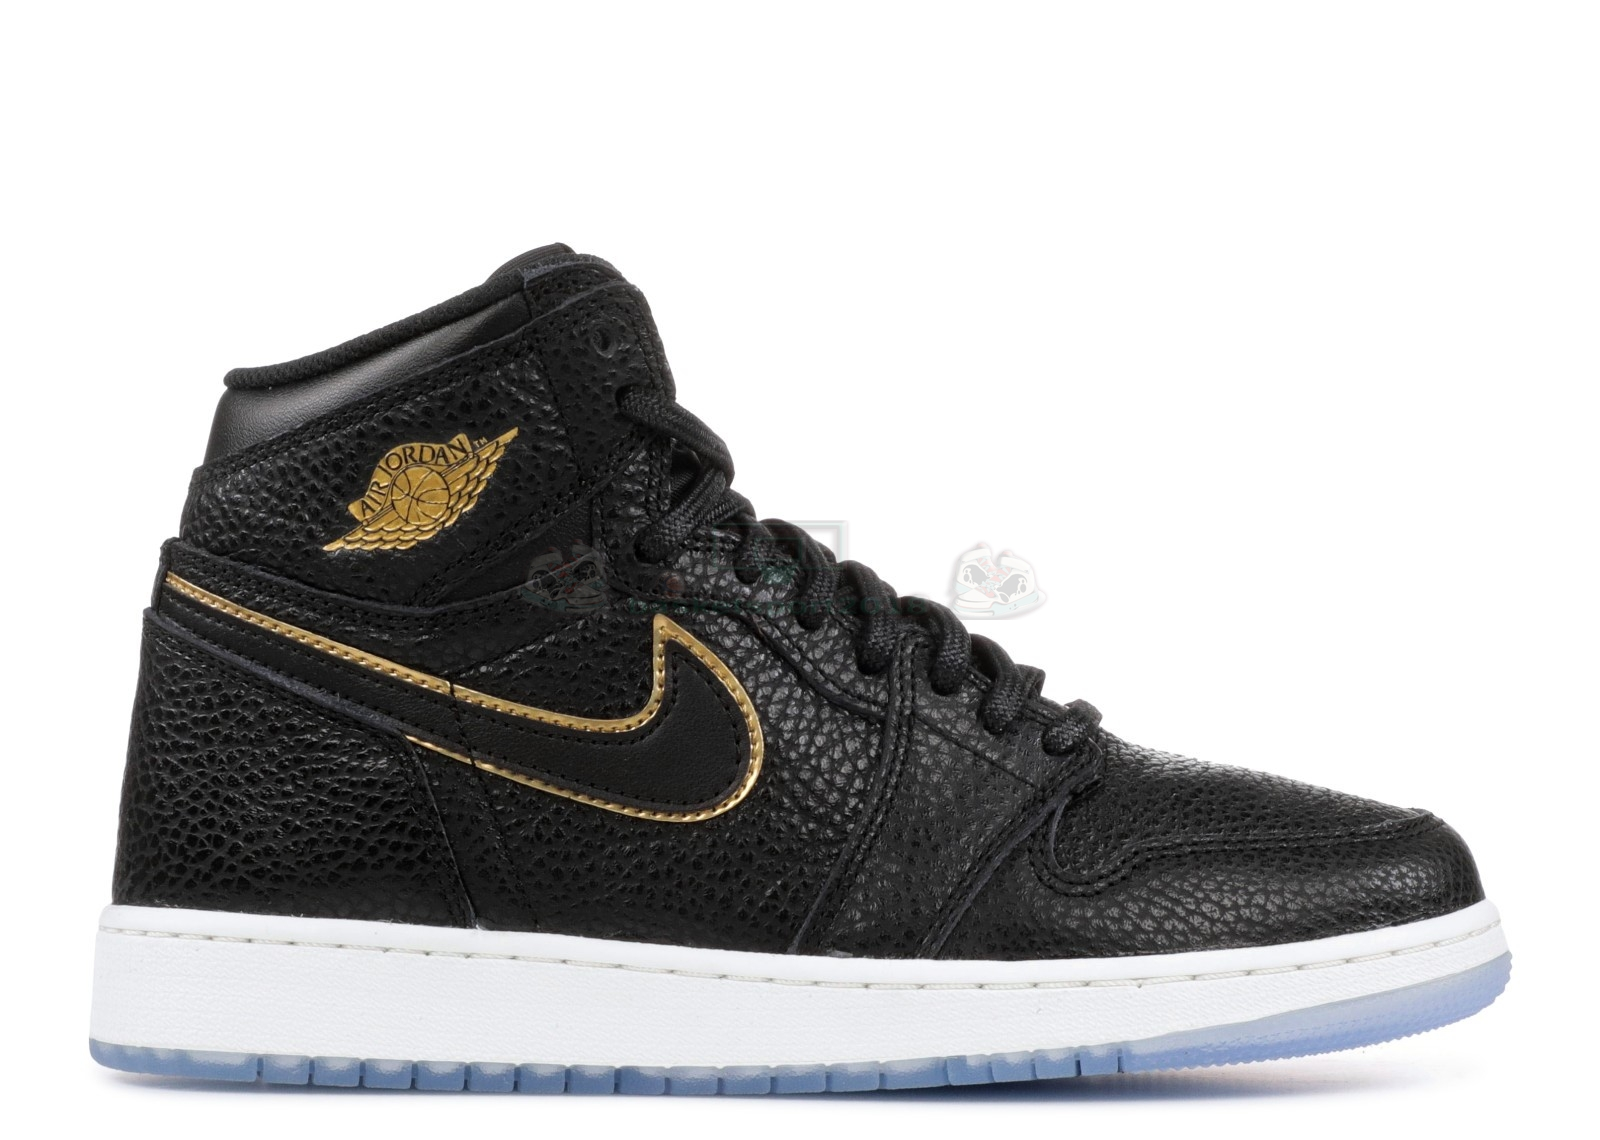 "Acheter Maintenant Pas Cher Enfant - Air Jordan 1 Retro High Og (Gs) ""City Of Flight"" Noir Métallique Or (575441-031)"